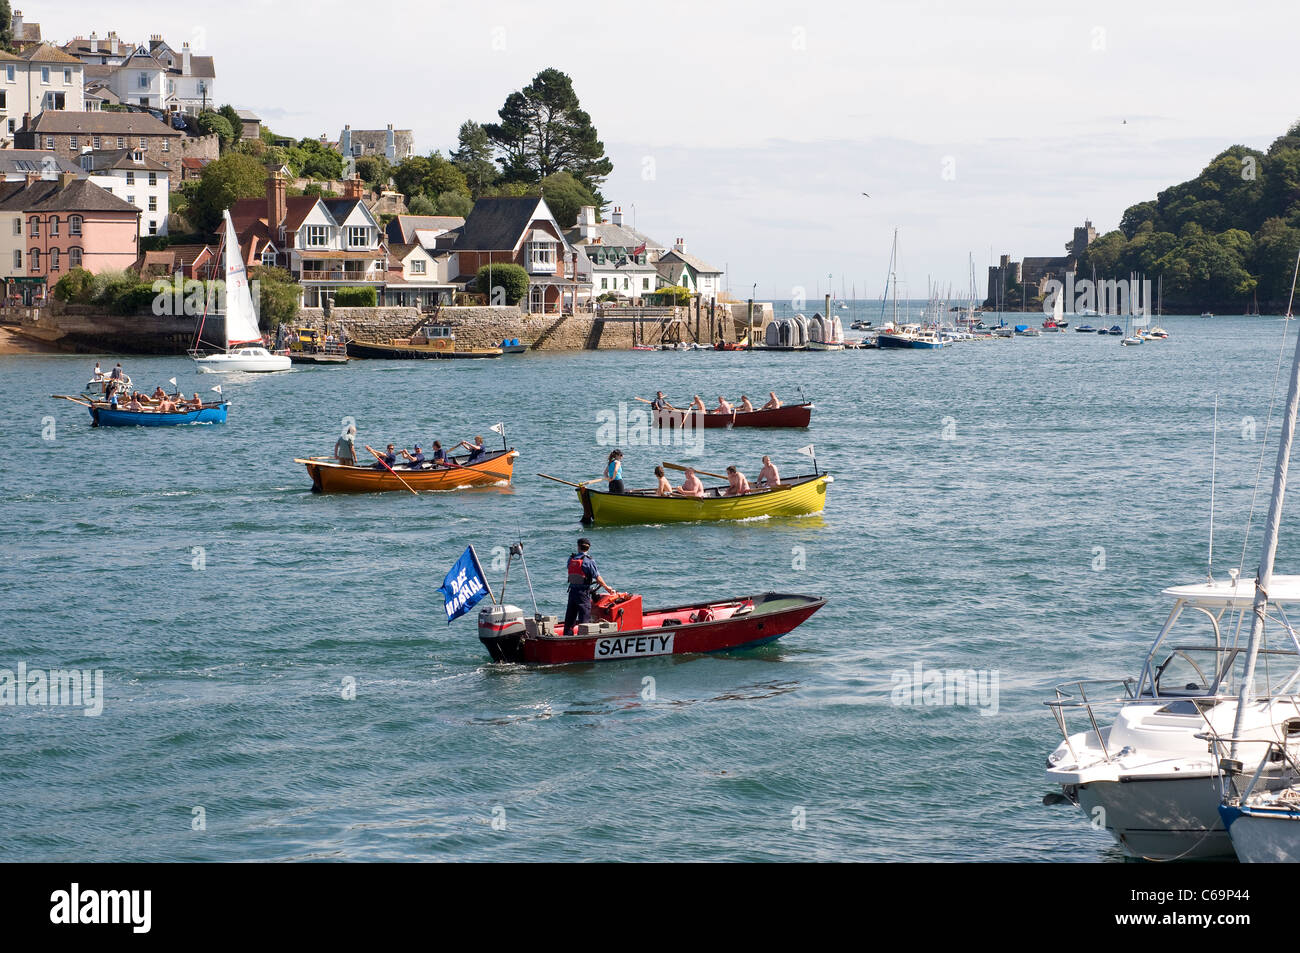 Safety boat on River Dart for Dartmouth Regatta,kingwear, South Devon,Gig racing,Race Marshall watching gigs racing - Stock Image